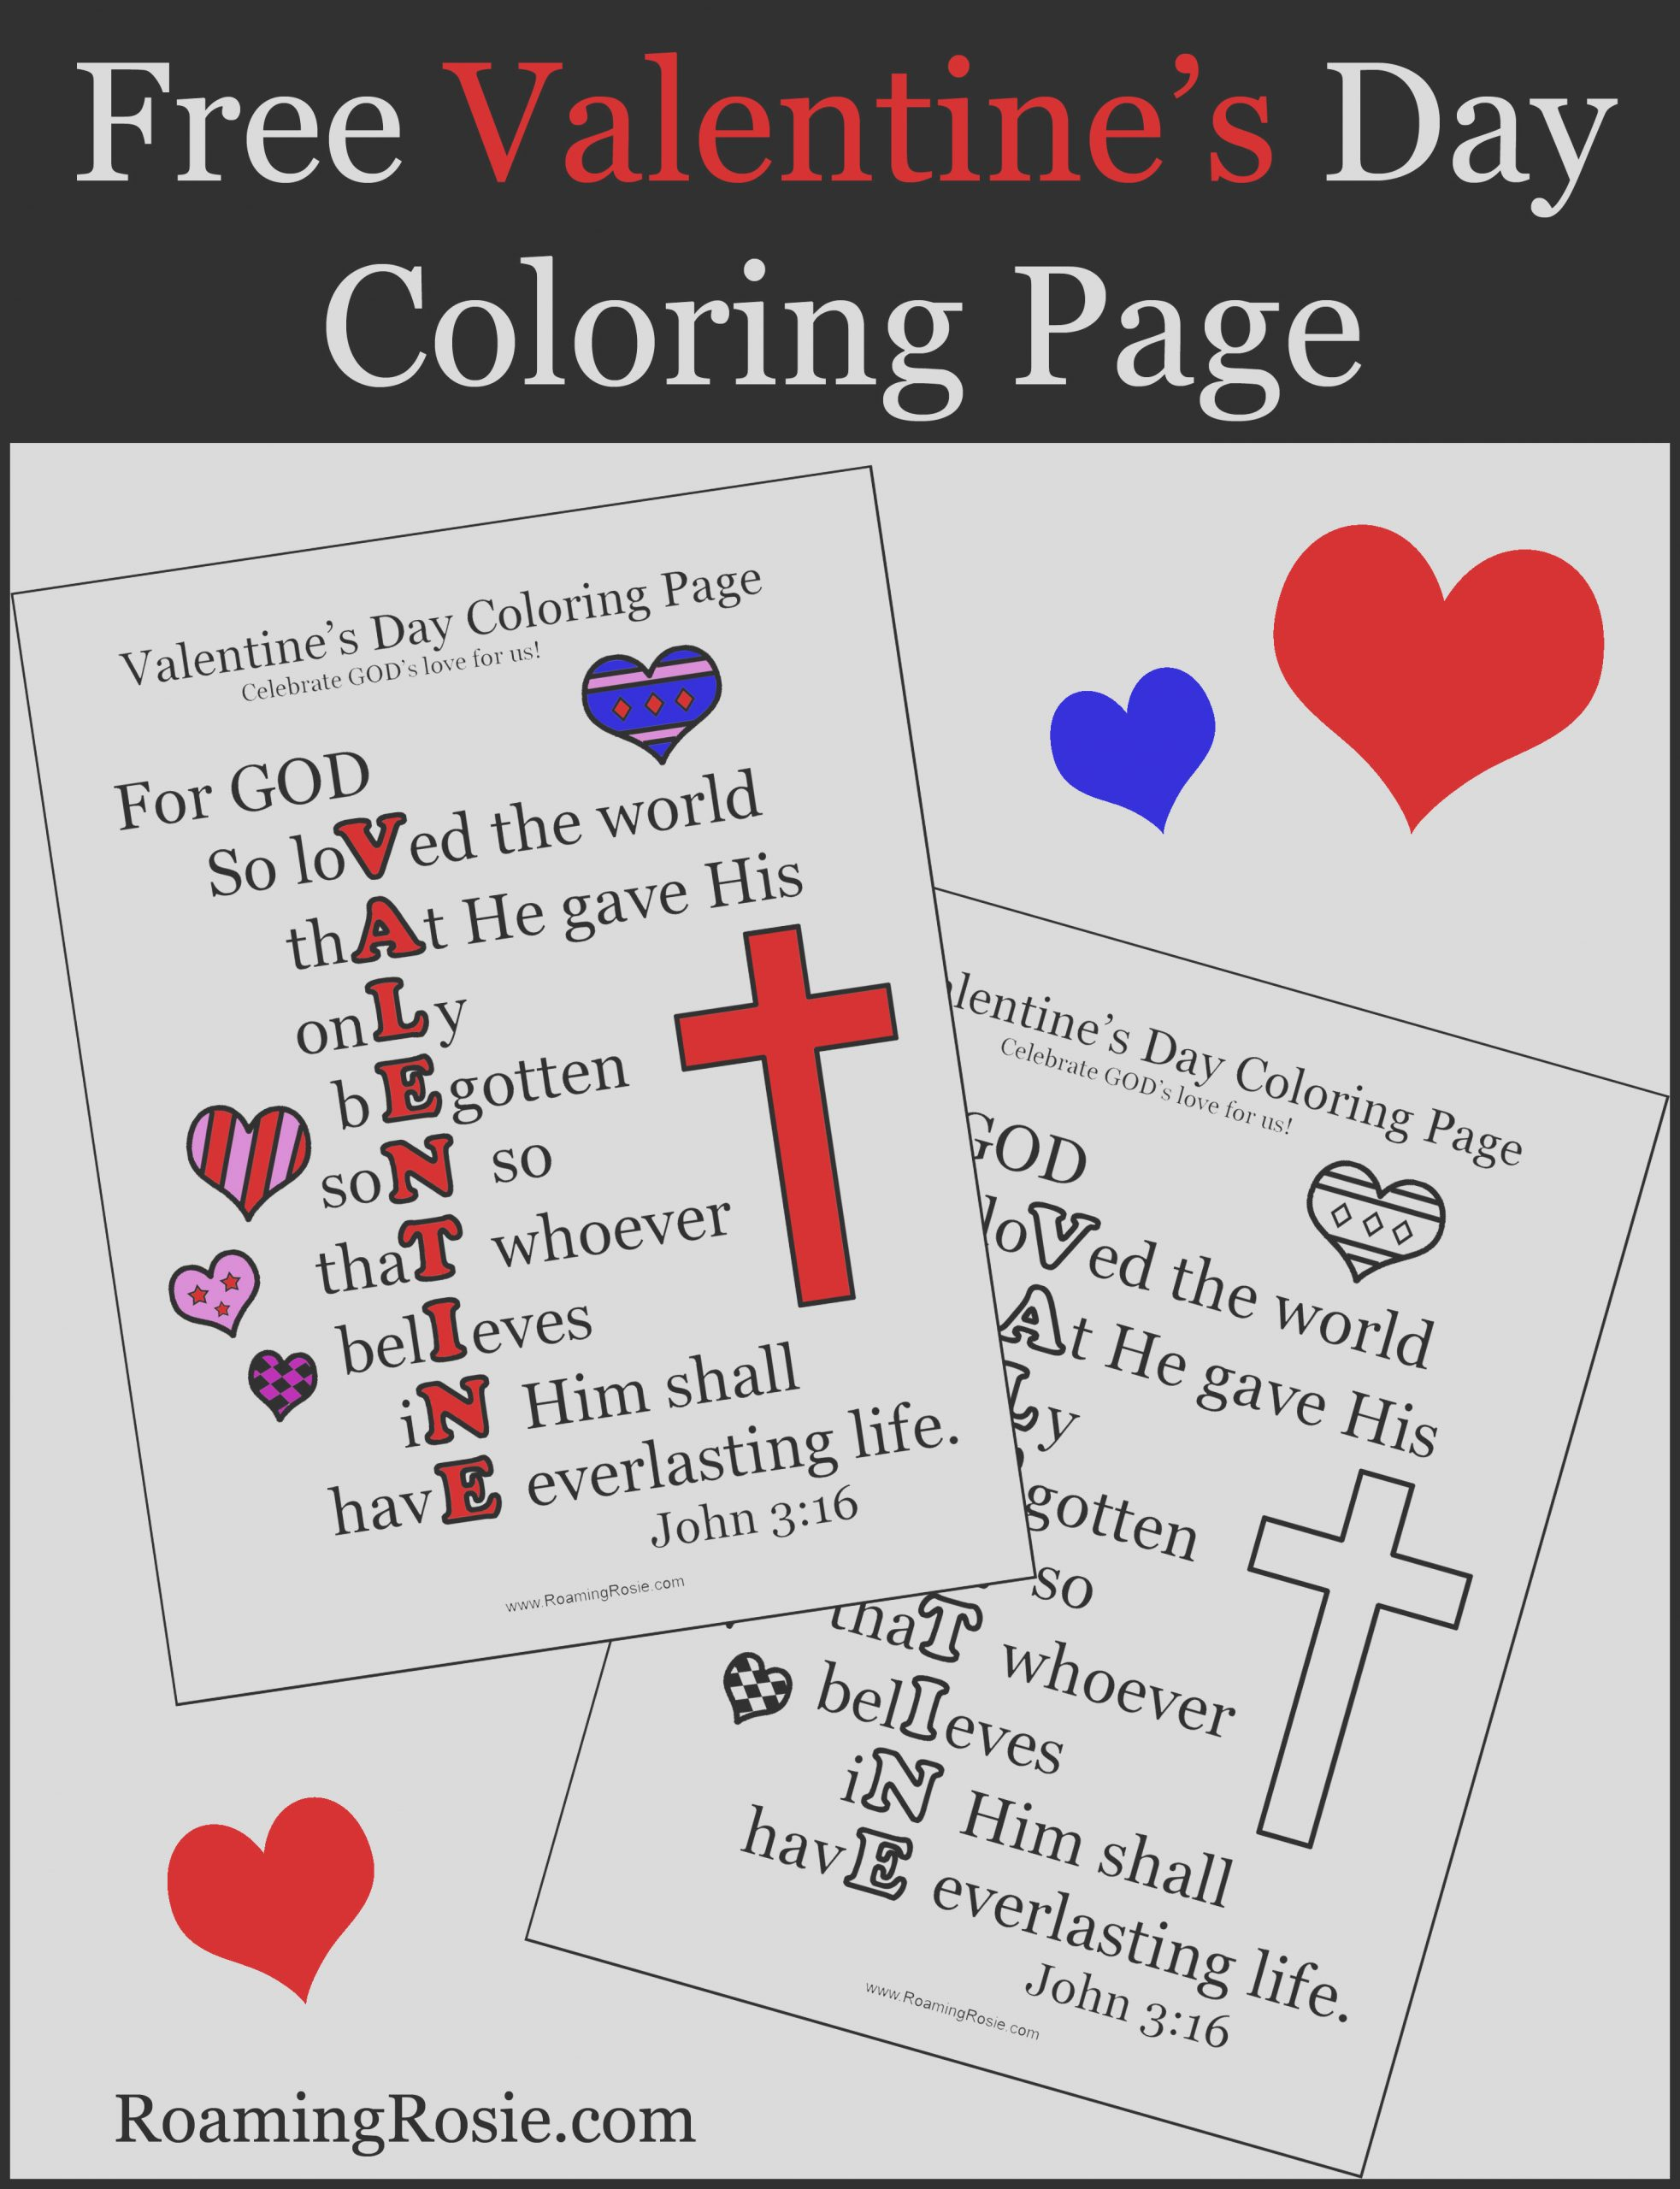 valentines day coloring page with john 316 quote